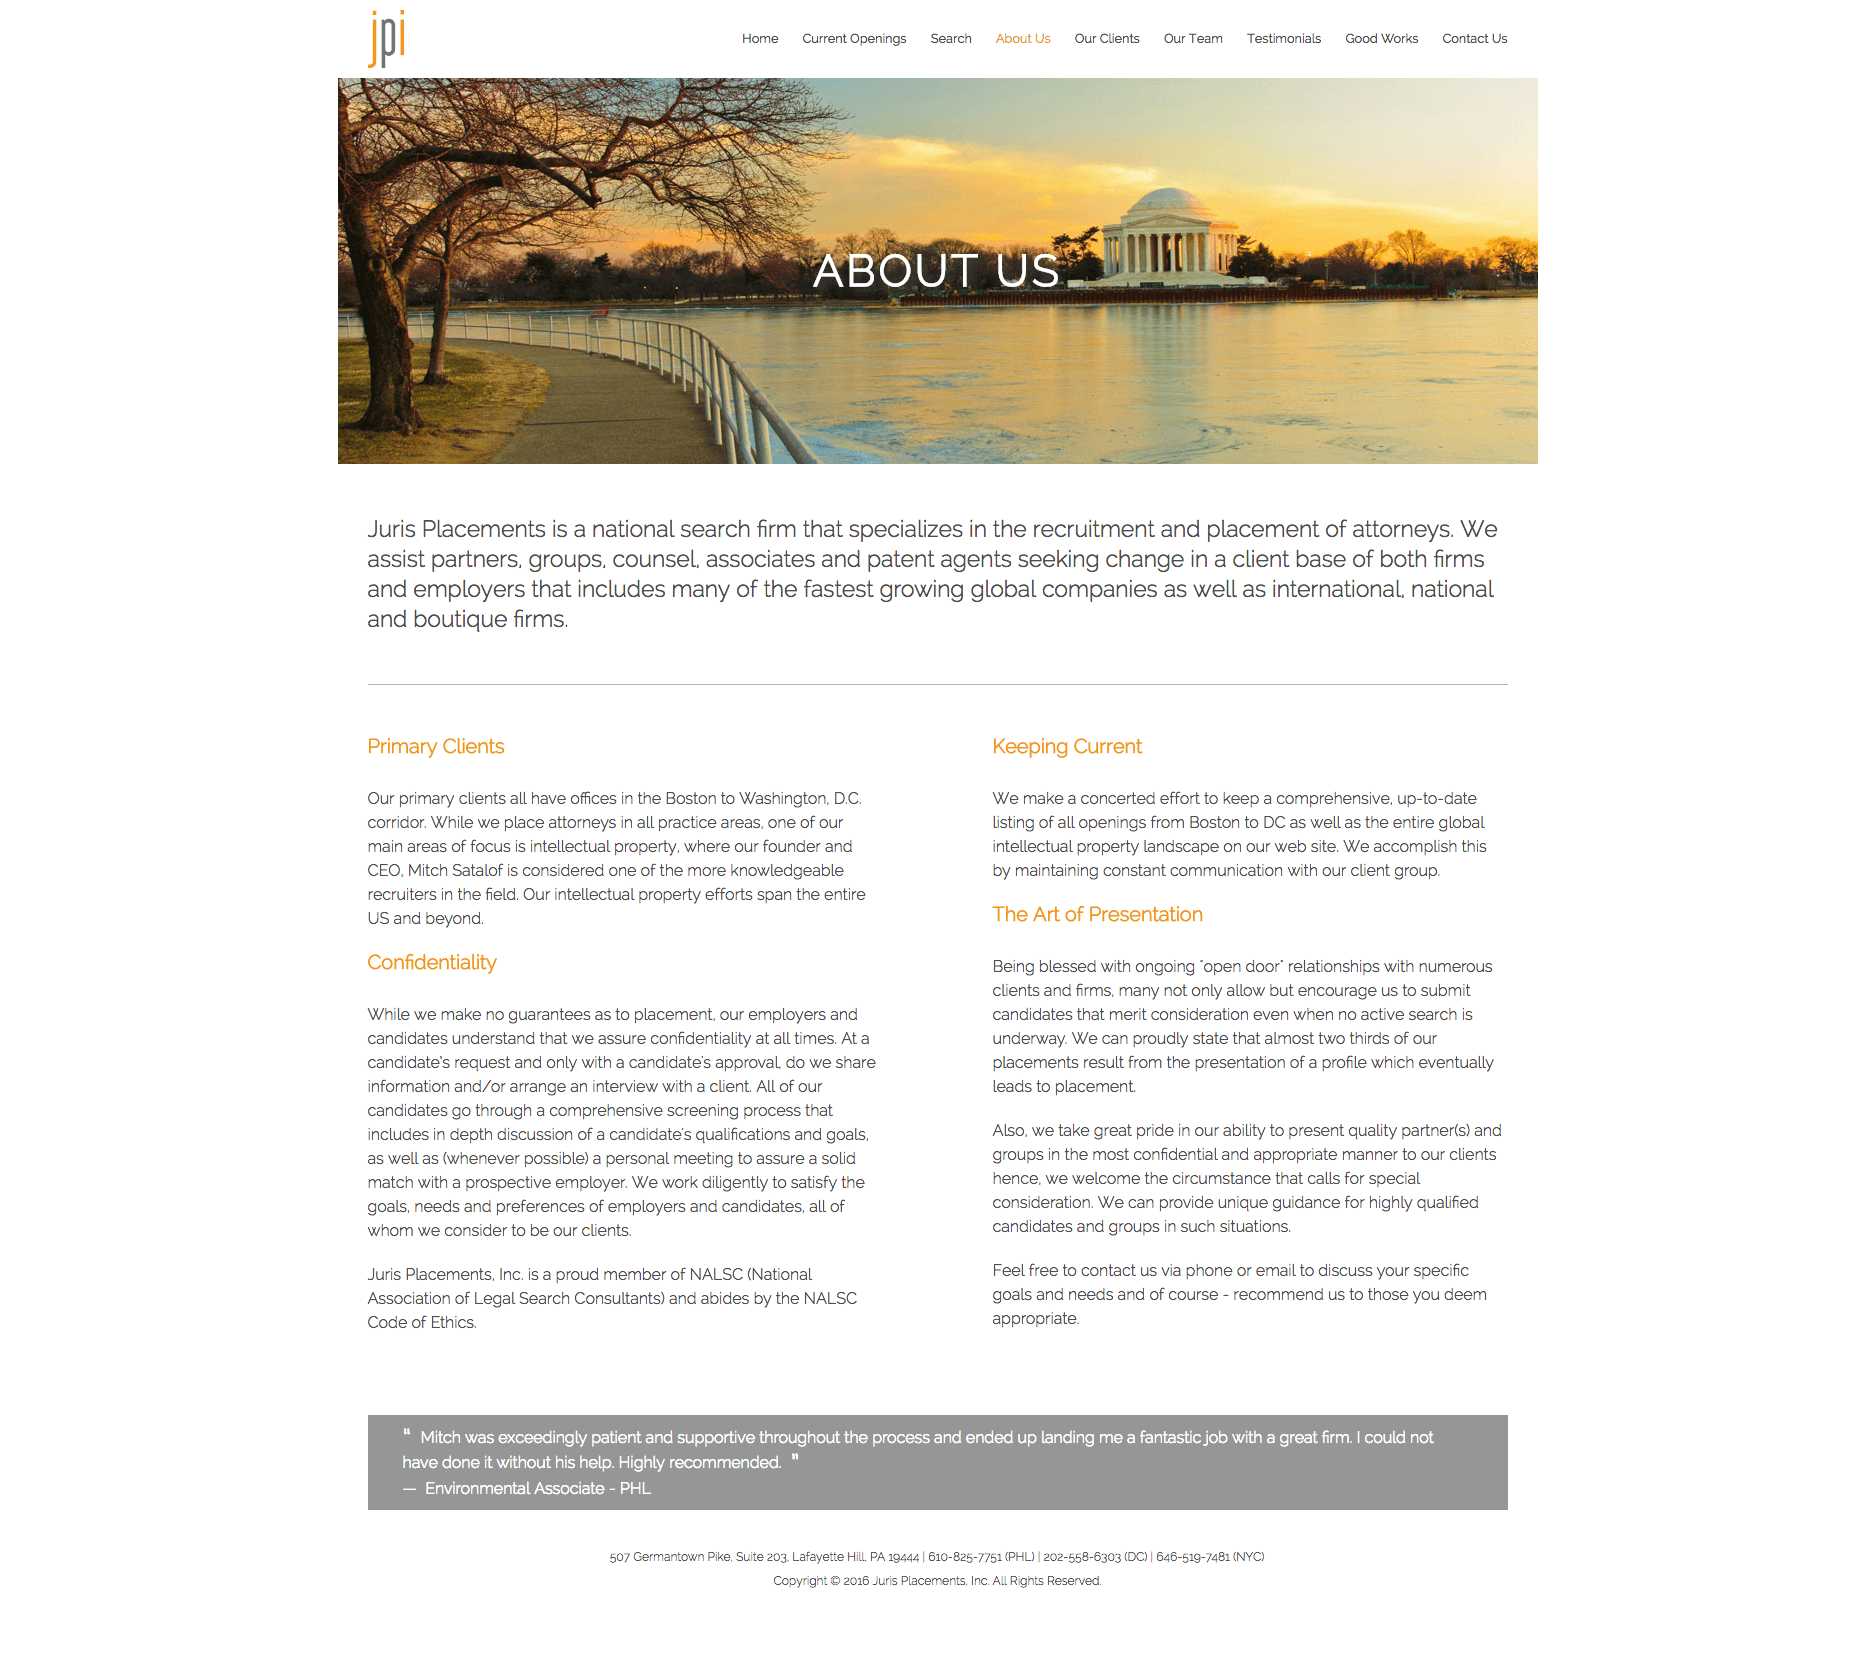 JPI-custom-responsive-website-cms-about.png